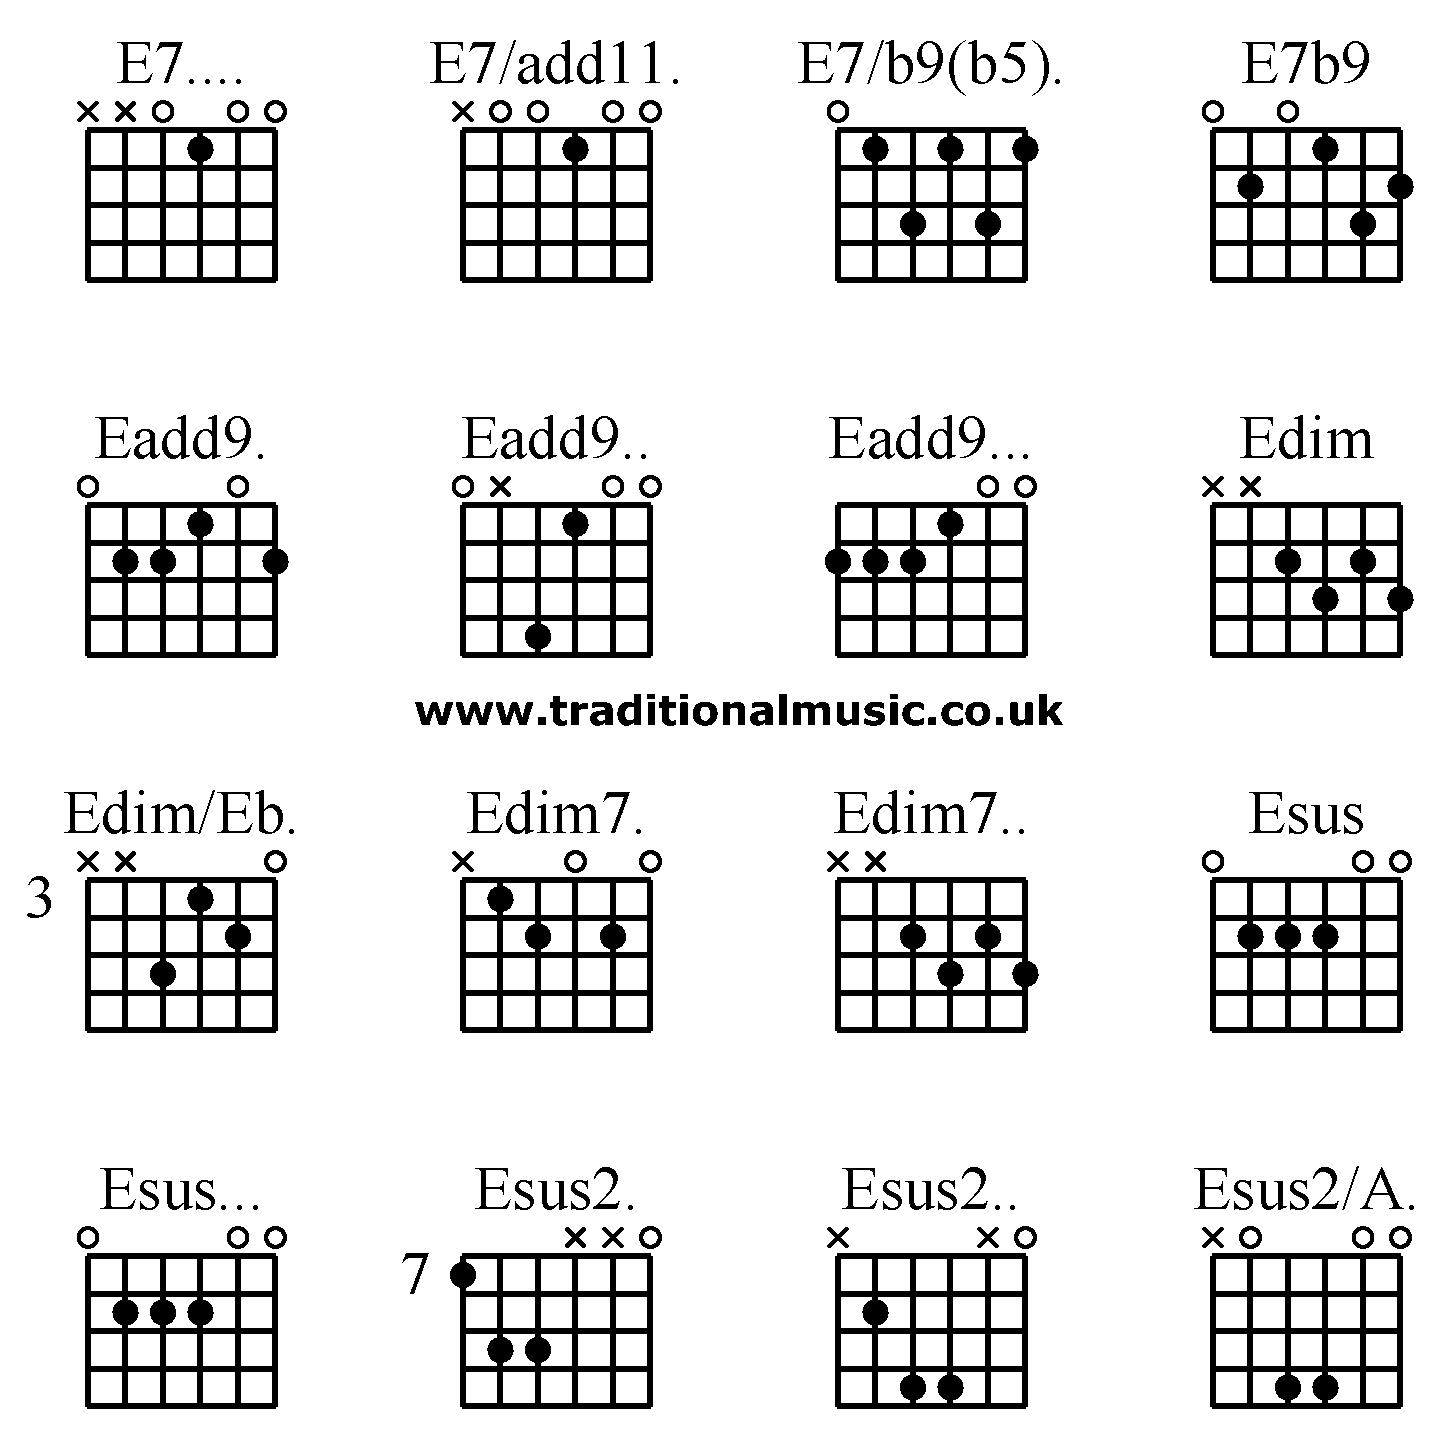 Guitar chords gm7